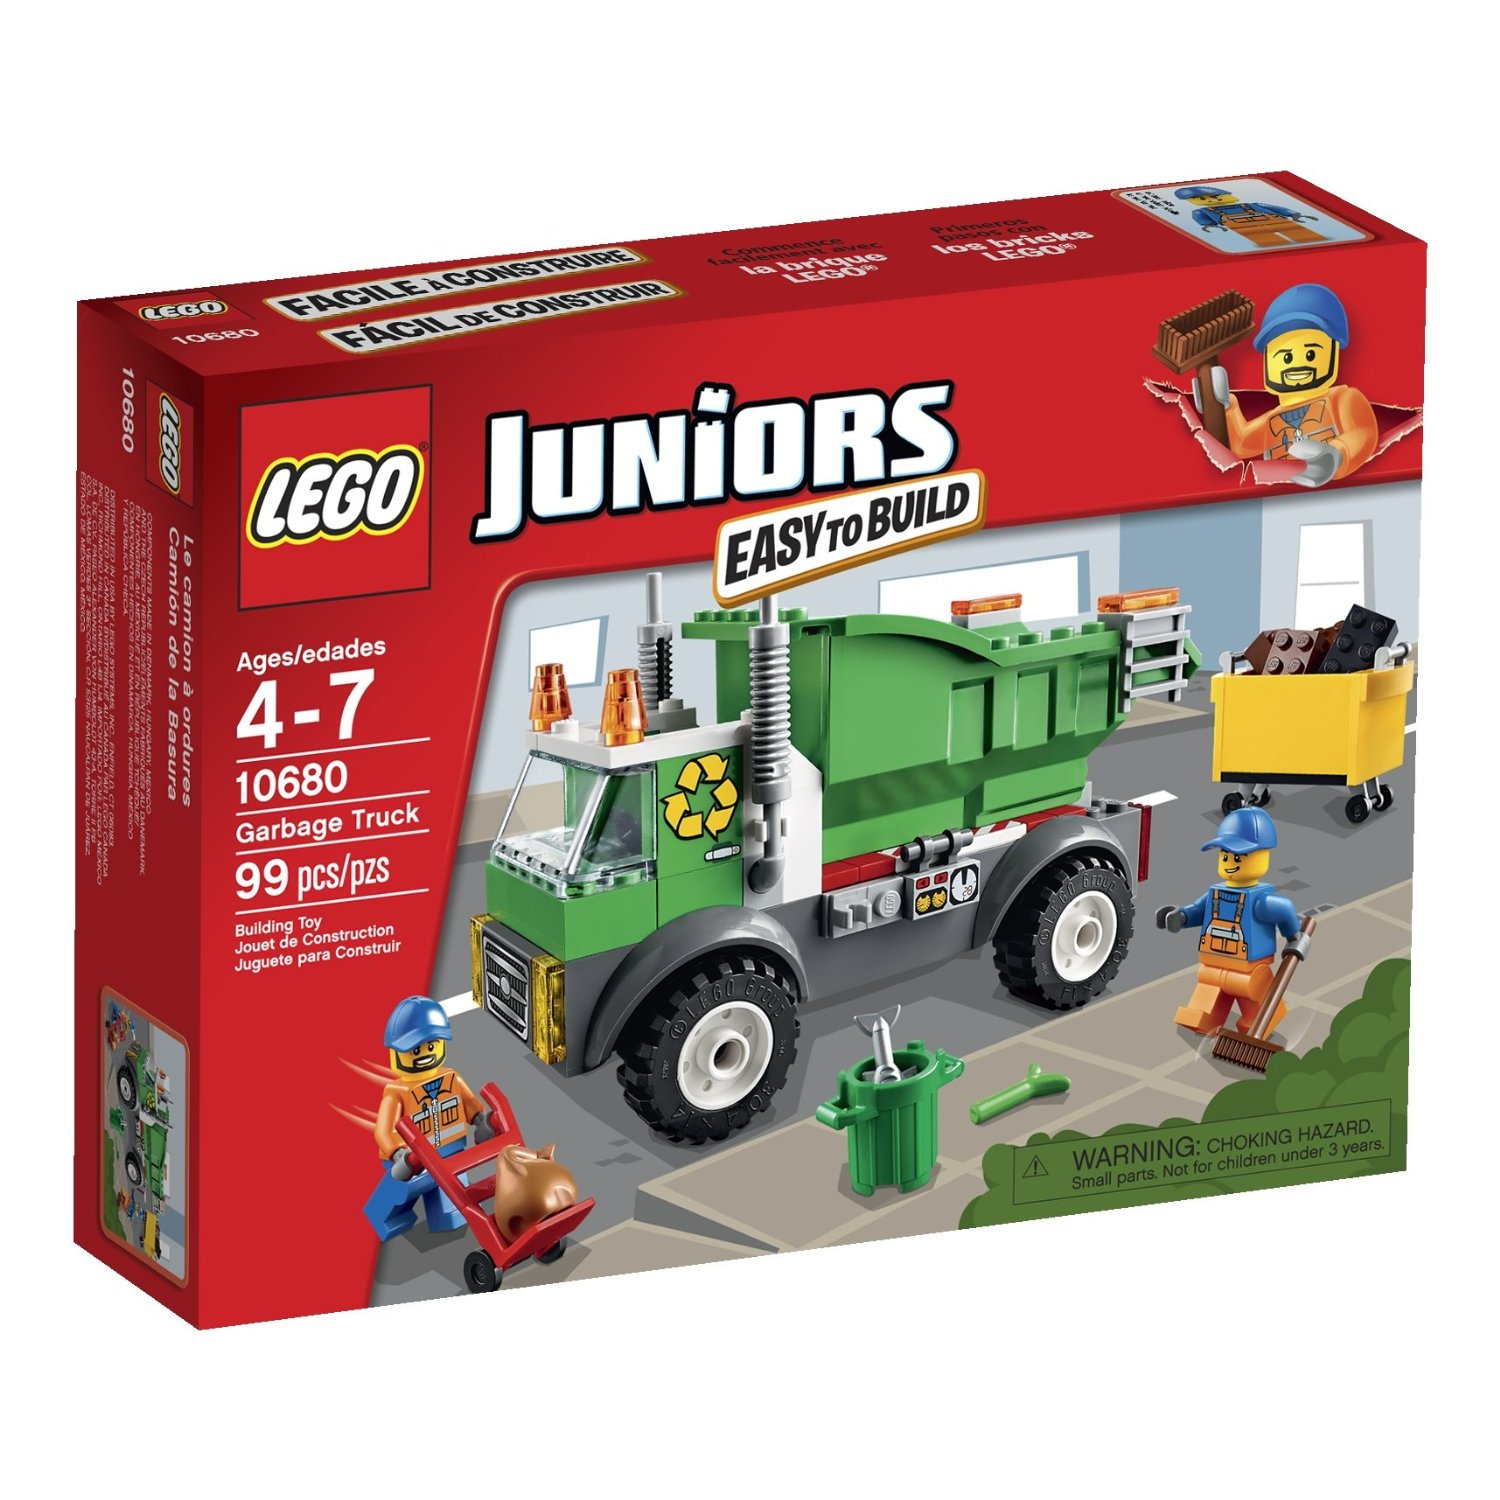 Lego Juniors Garbage Truck Only 14 99 Lowest Price